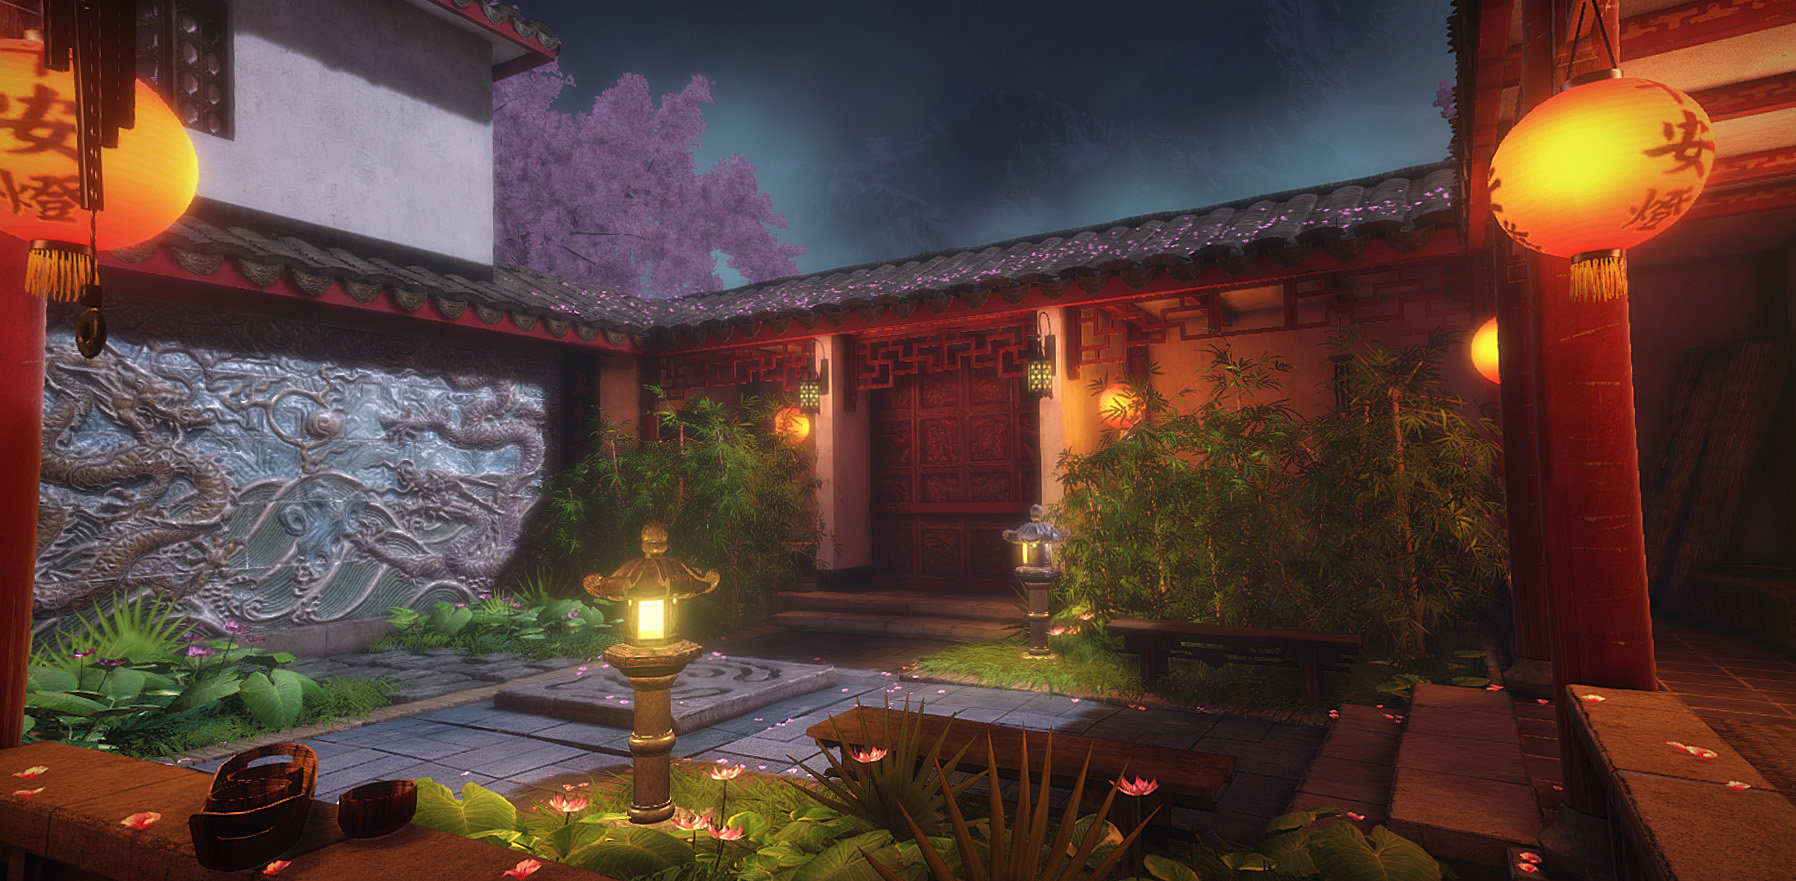 Jeff severson chinese courtyard night 06